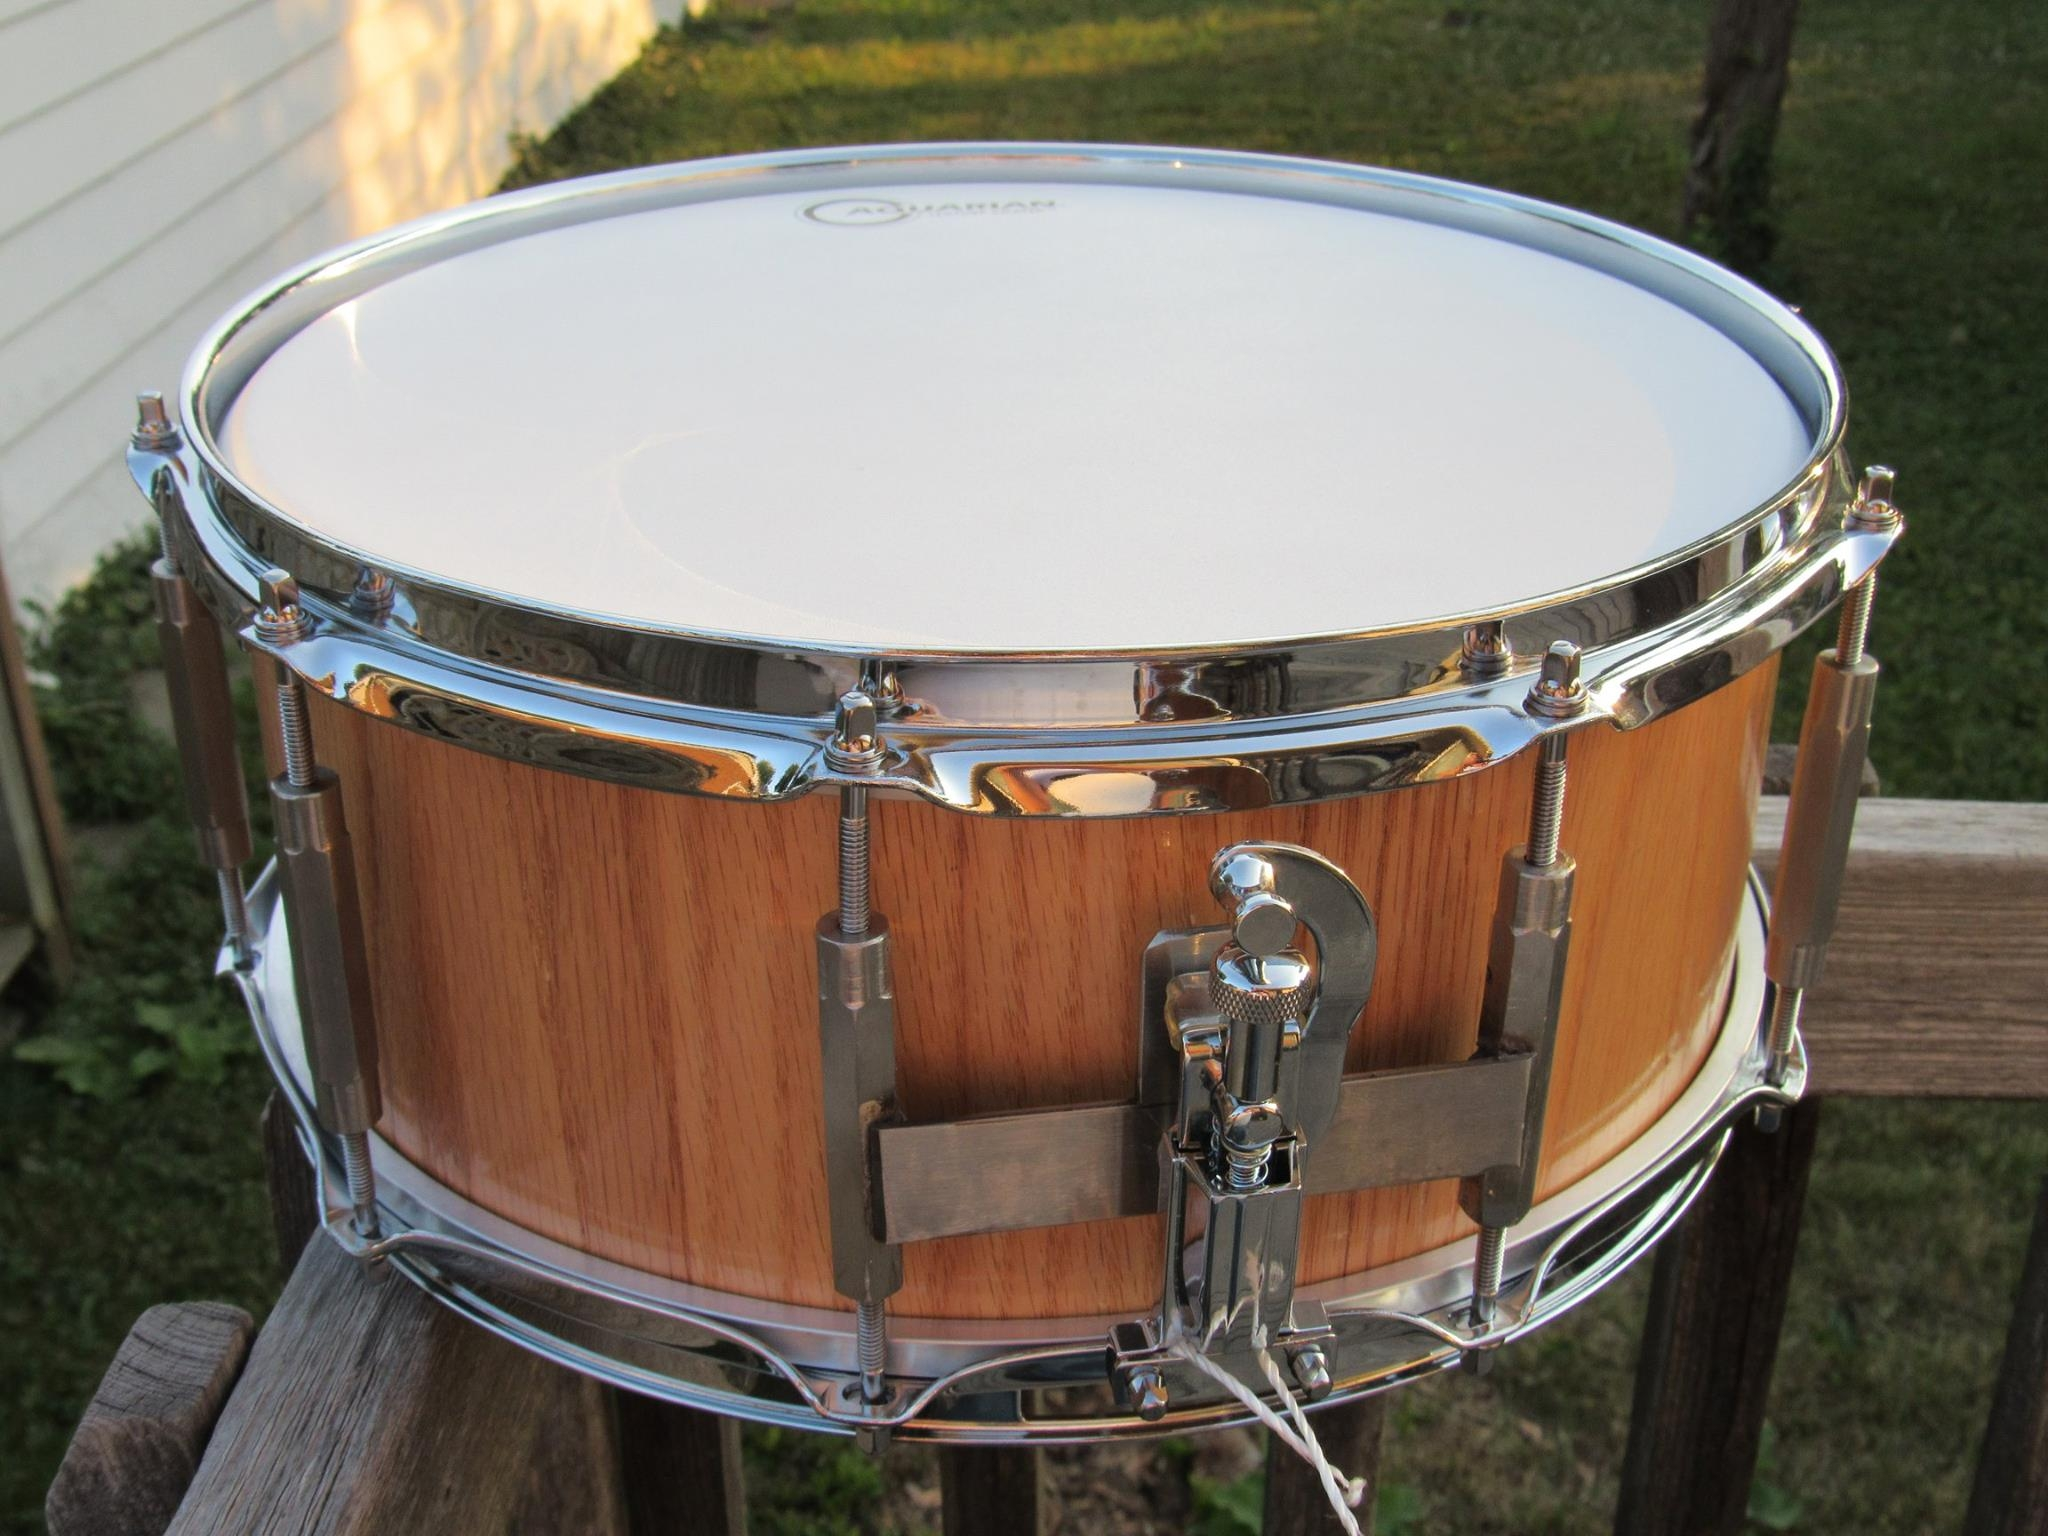 Great sounding floating snare drums!